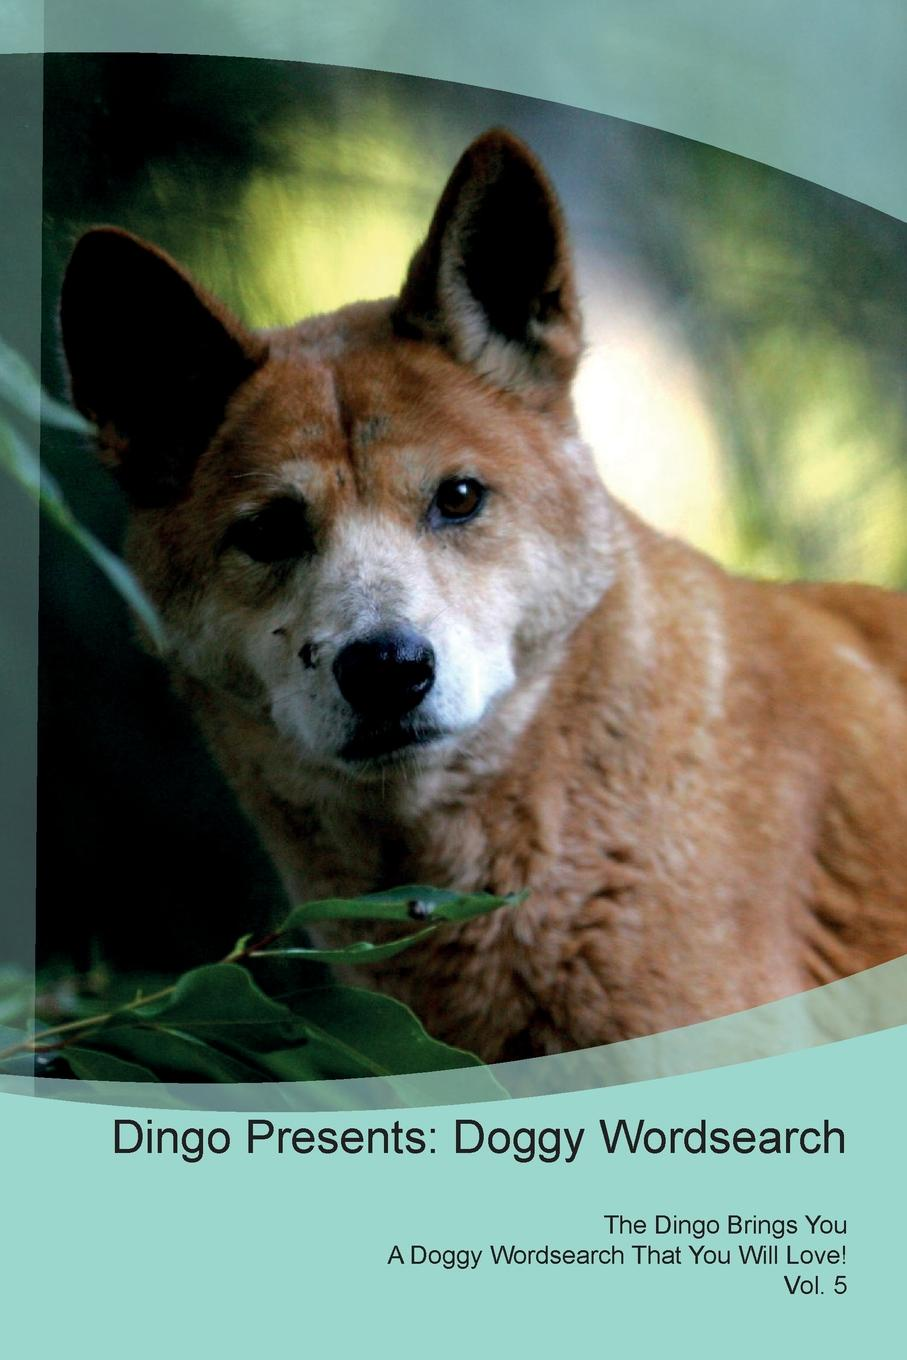 Doggy Puzzles Dingo Presents. Wordsearch The Brings You A That Will Love! Vol. 5